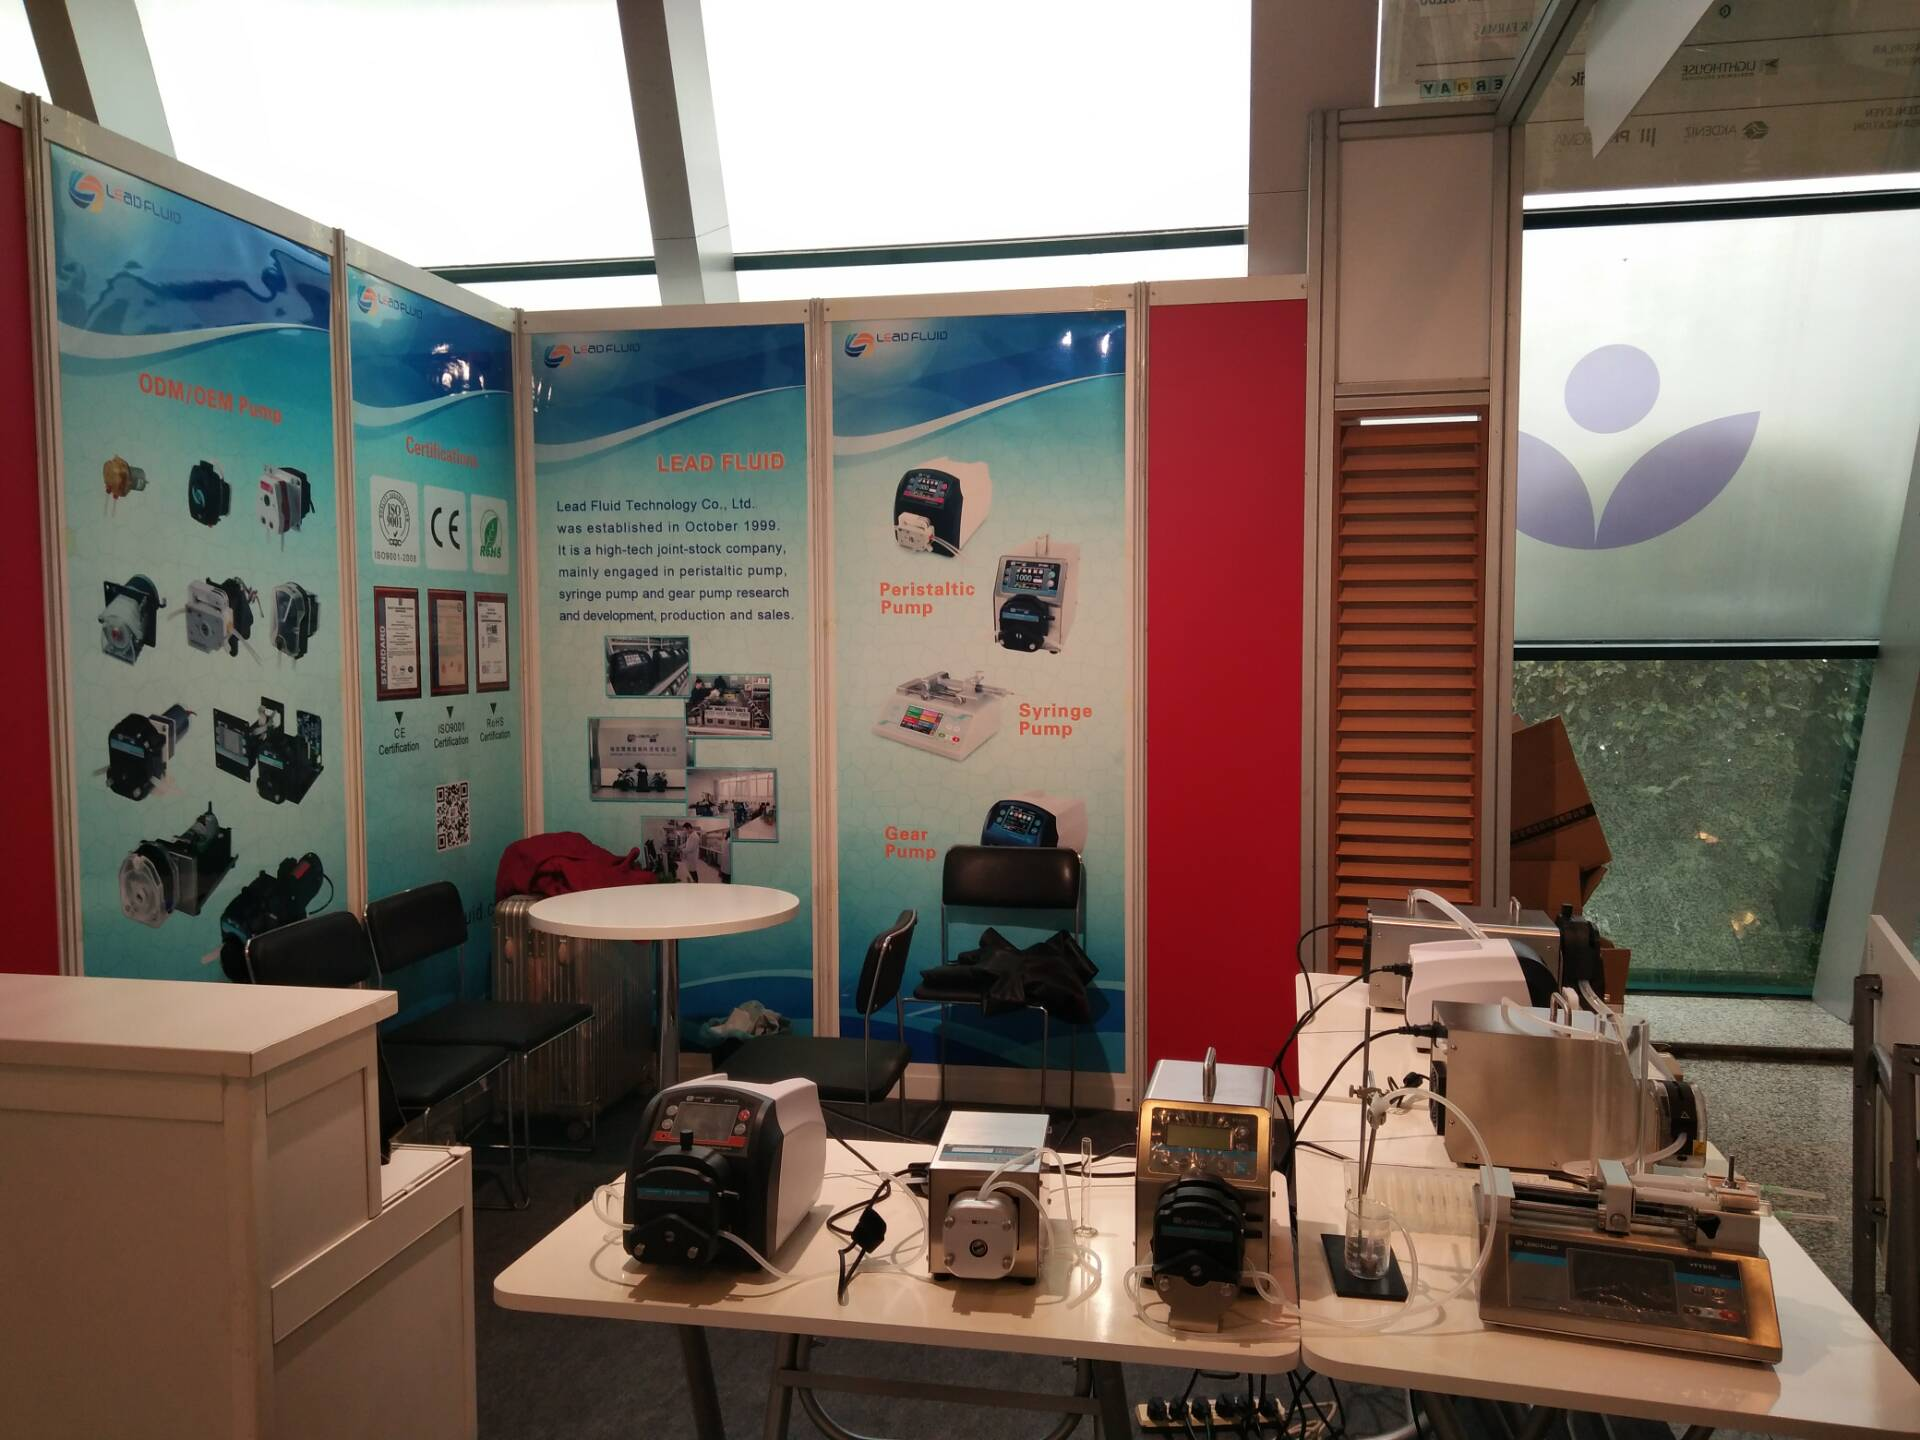 Analytic Technology,Laboratory Equipment and Chemicals Exhibition